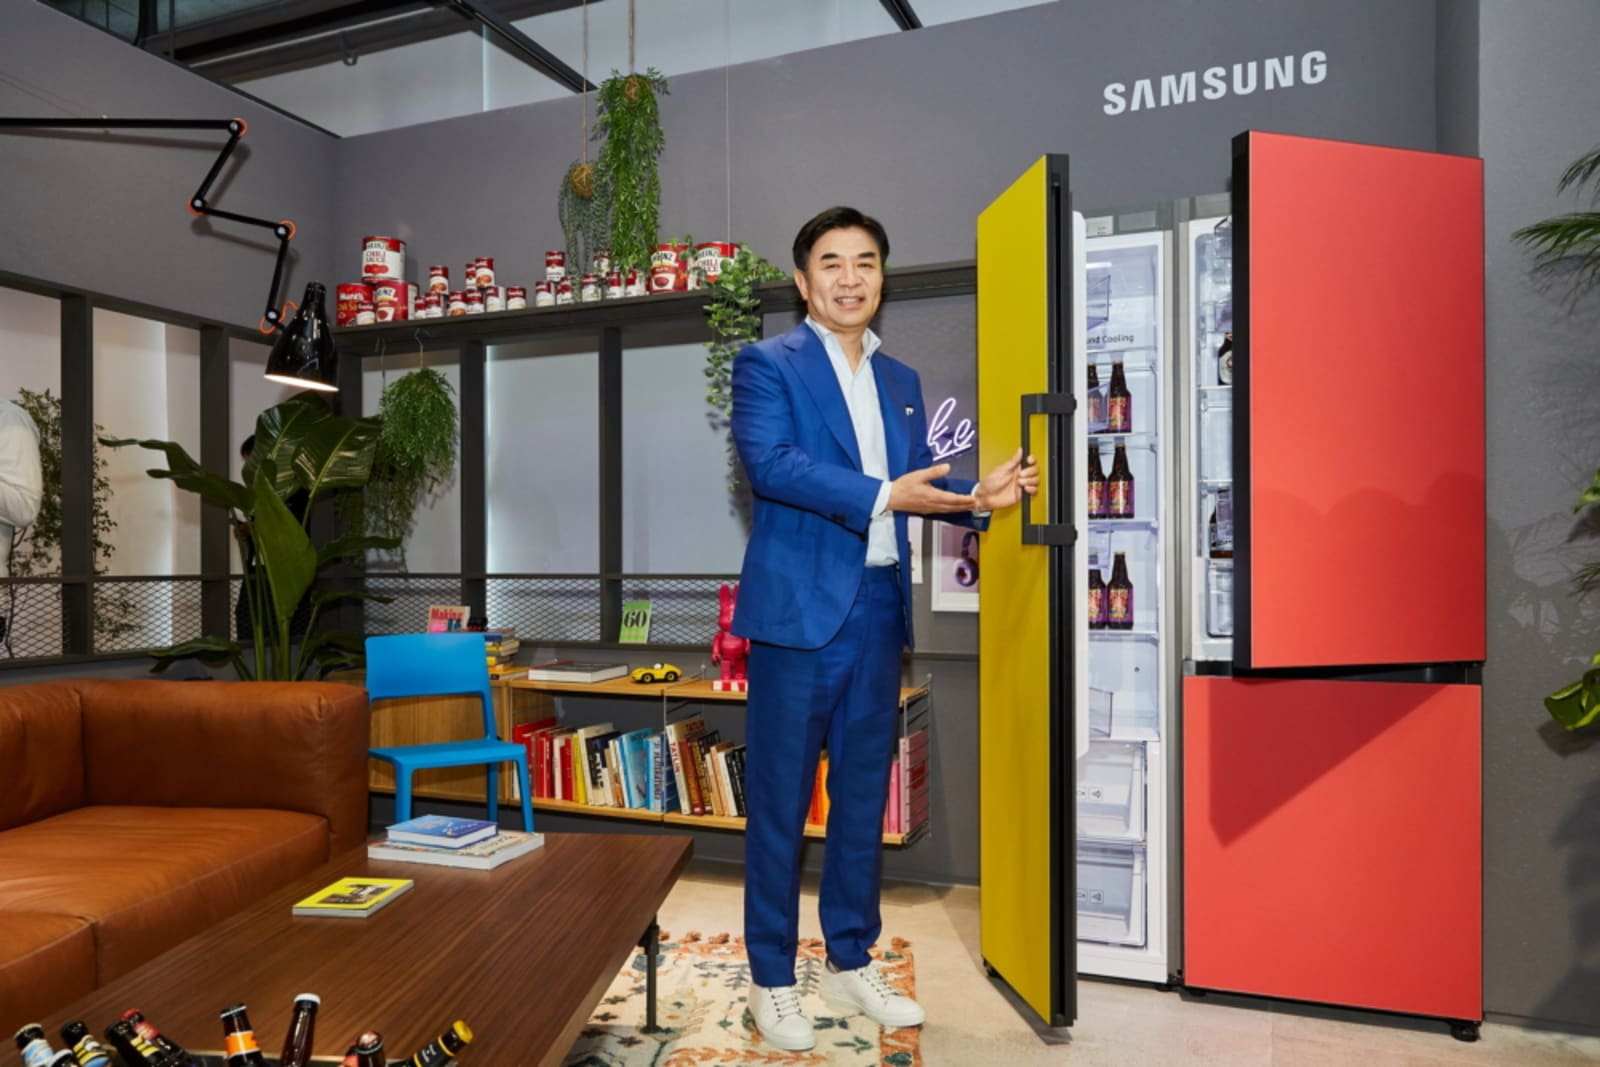 Samsung's customizable refrigerator comes in nine colors and